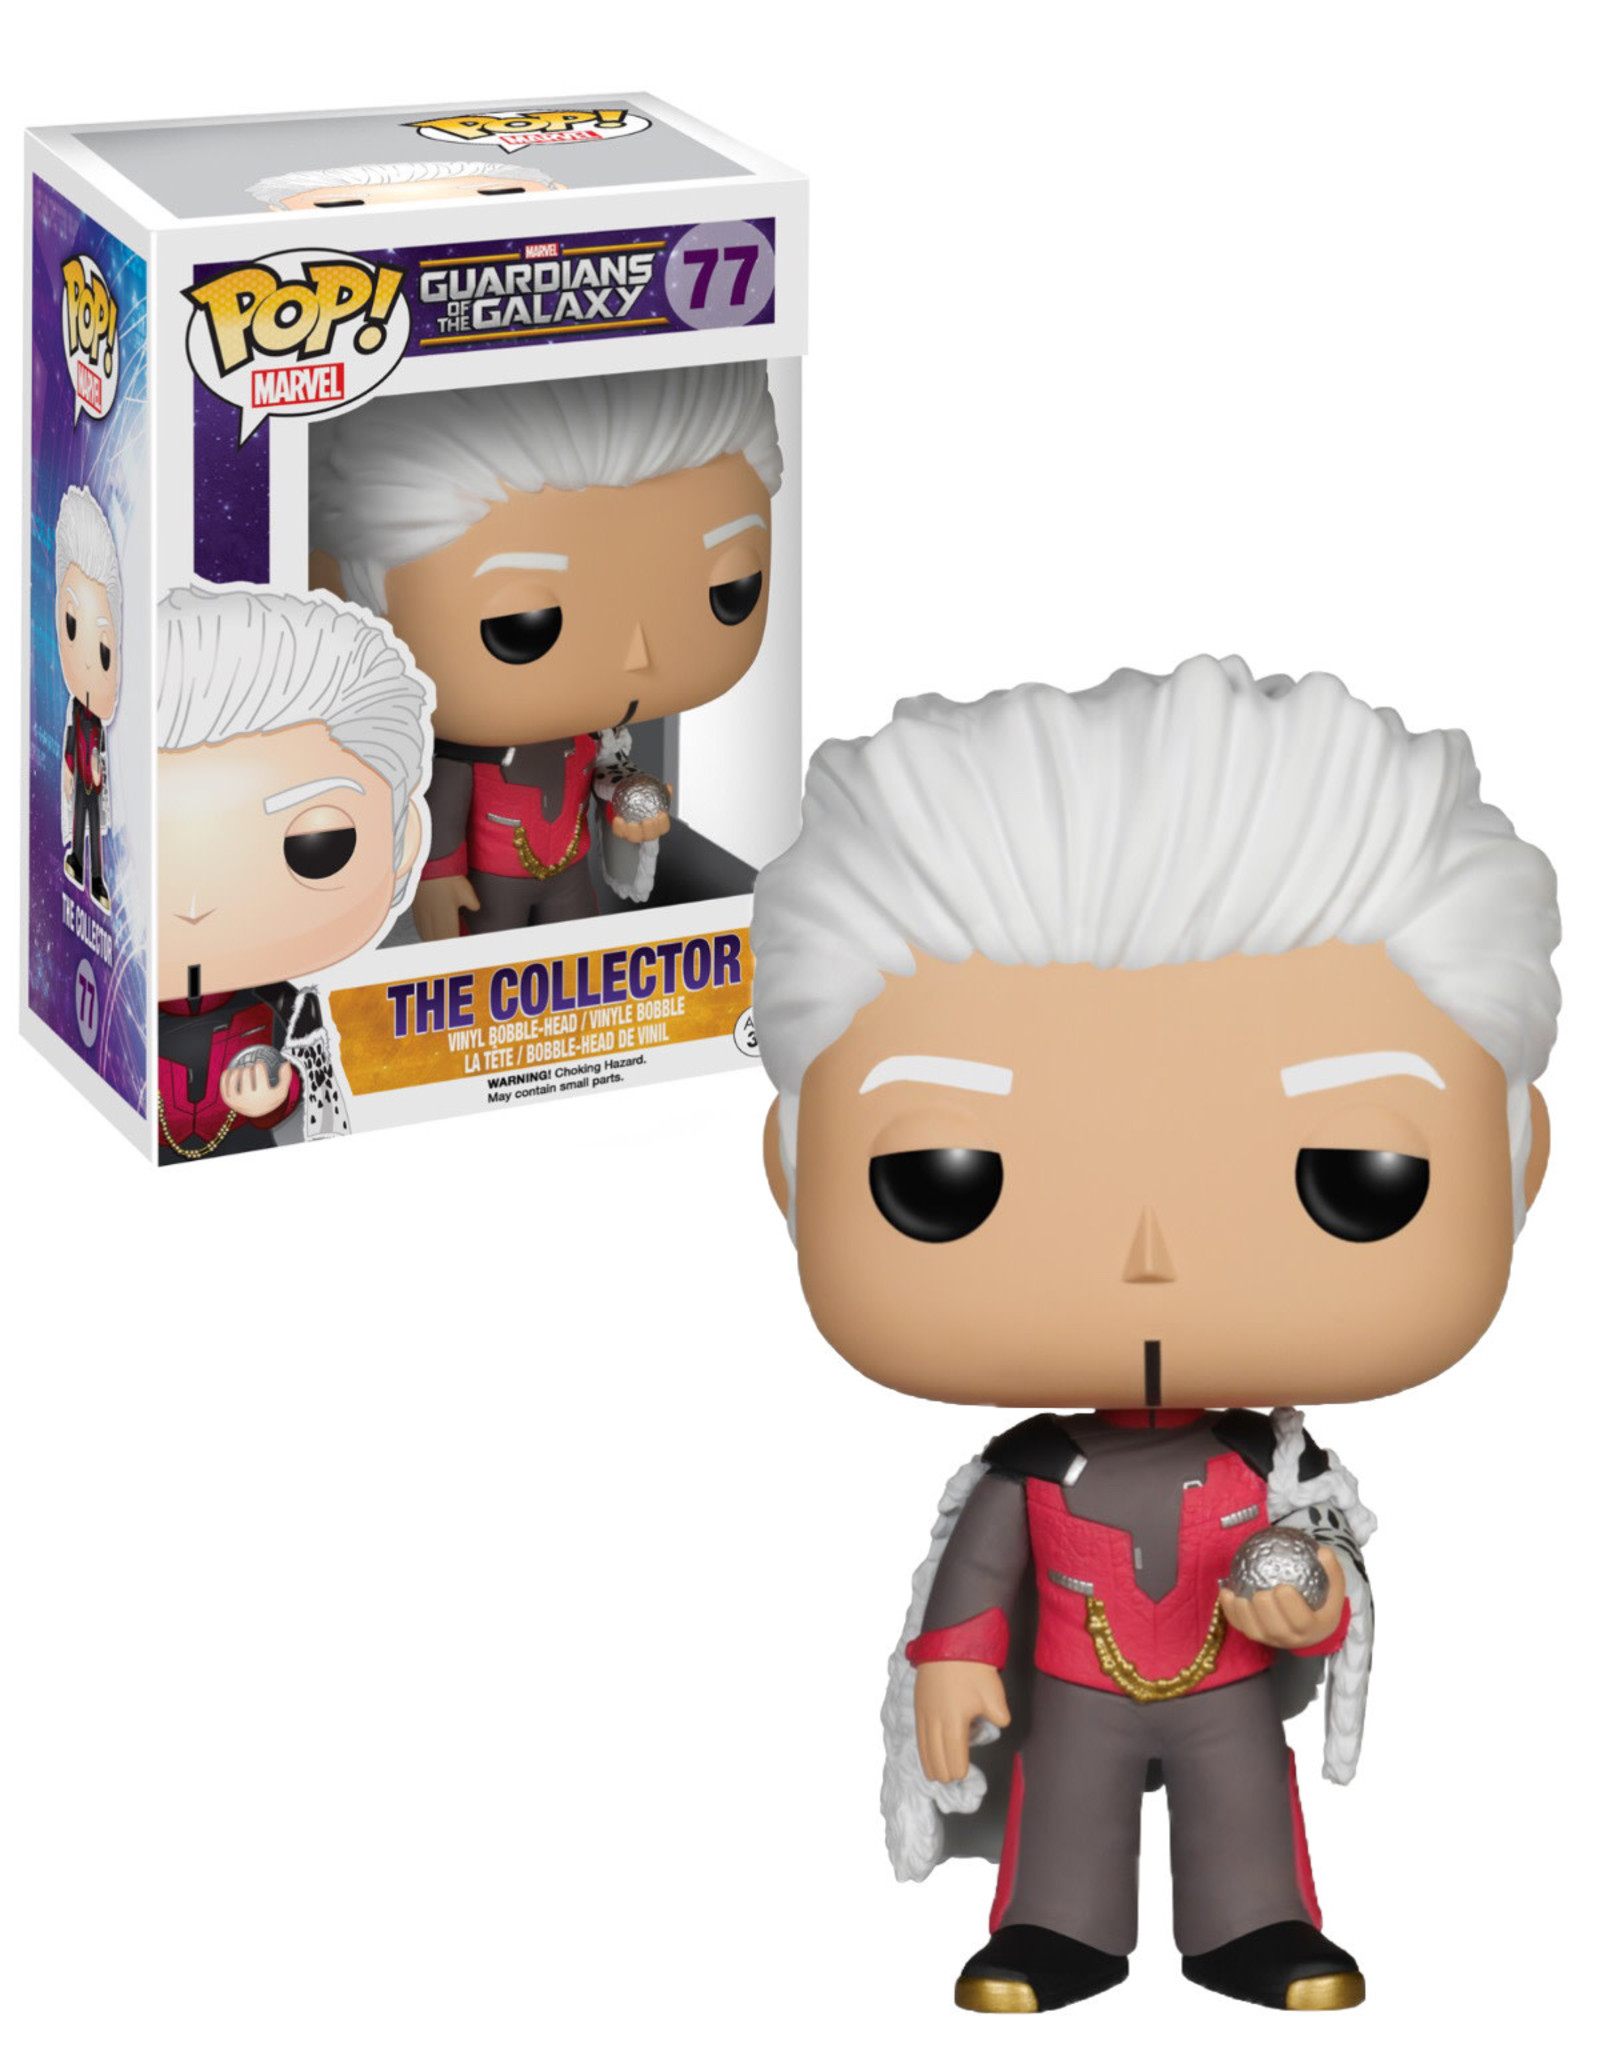 Guardians of the Galaxy 77 ( Funko Pop ) The Collector